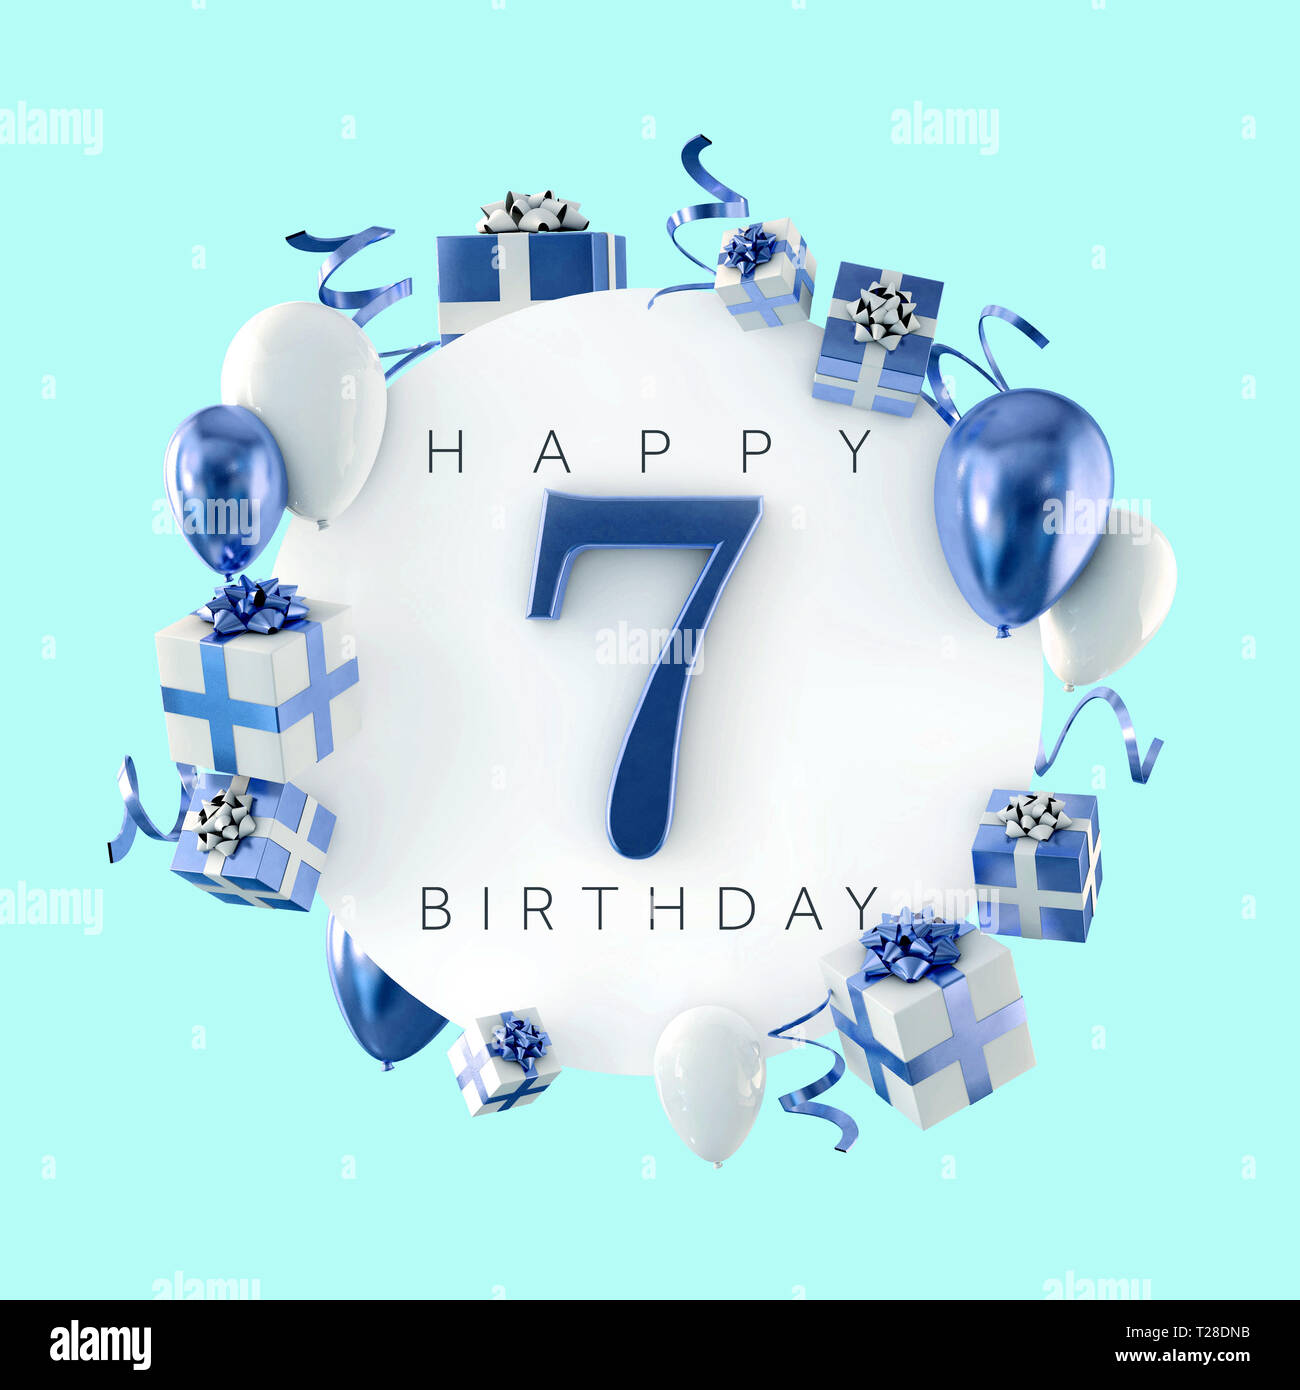 Happy 7th Birthday Party Composition With Balloons And Presents 3d Render Stock Photo Alamy